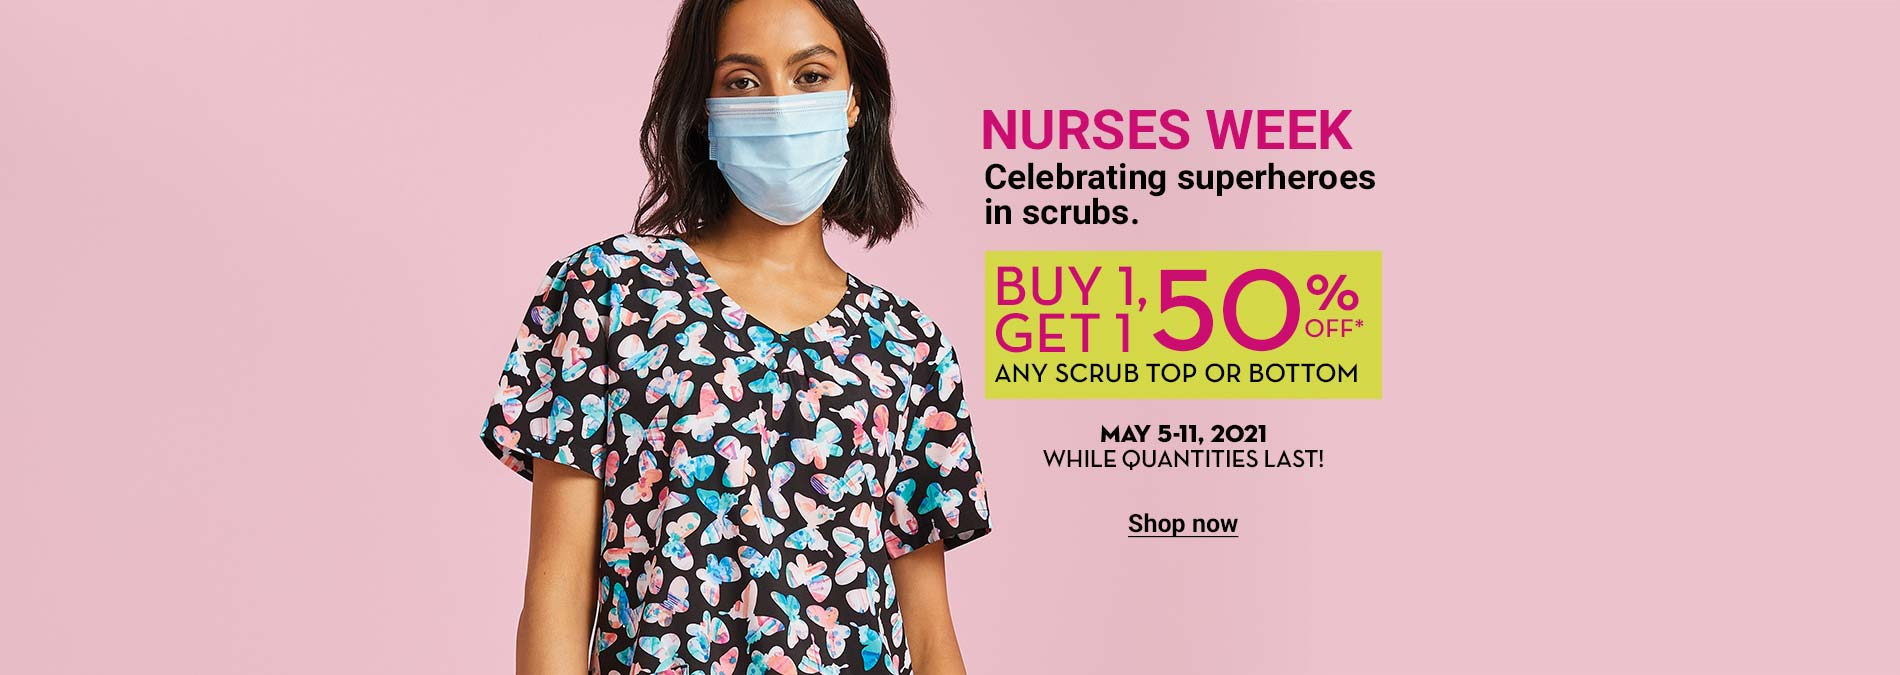 Nurses week. Celebrating superheroes in scrubs. Buy 1, get 1 50 off* any scrub top or bottom. May 5-11, 2021. While quantities last!